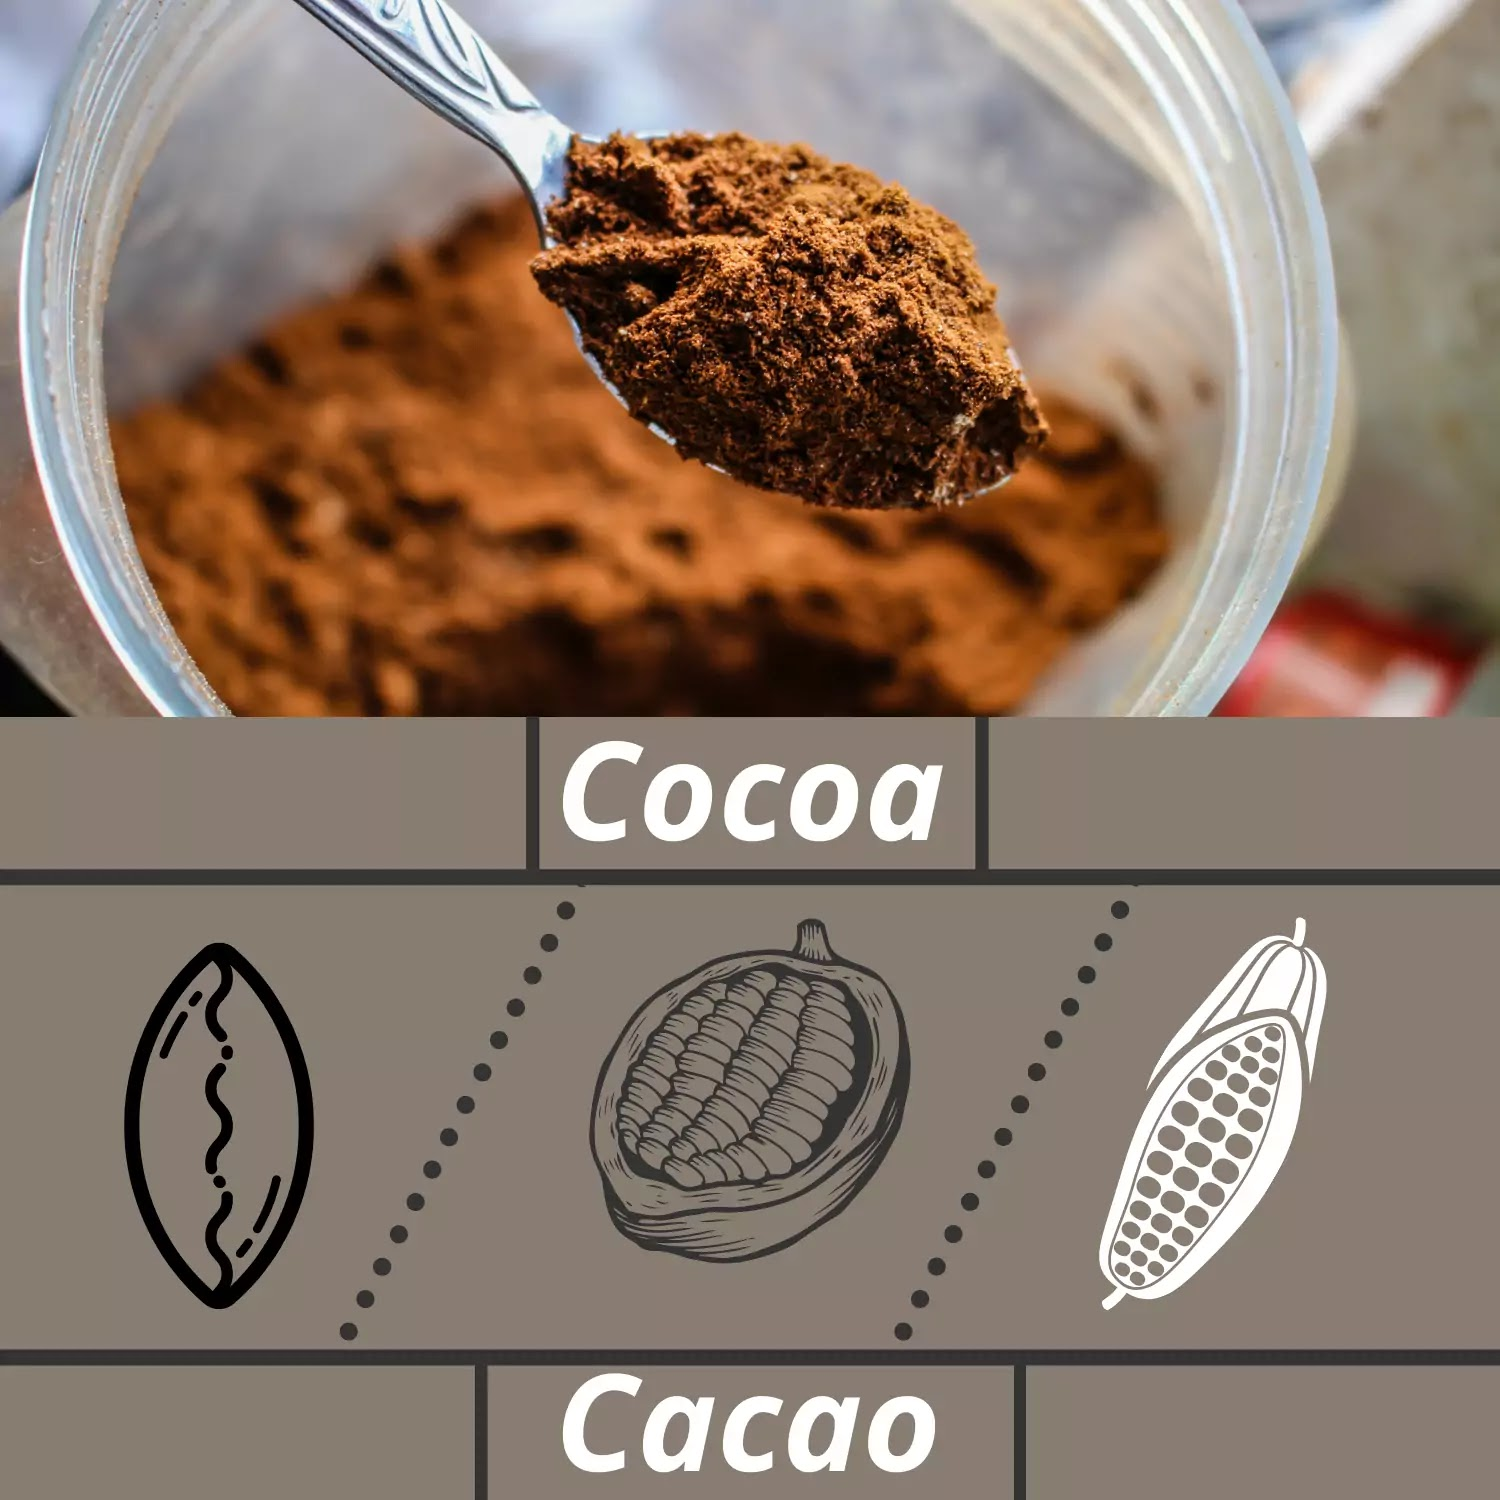 Cacao fat burning food for men